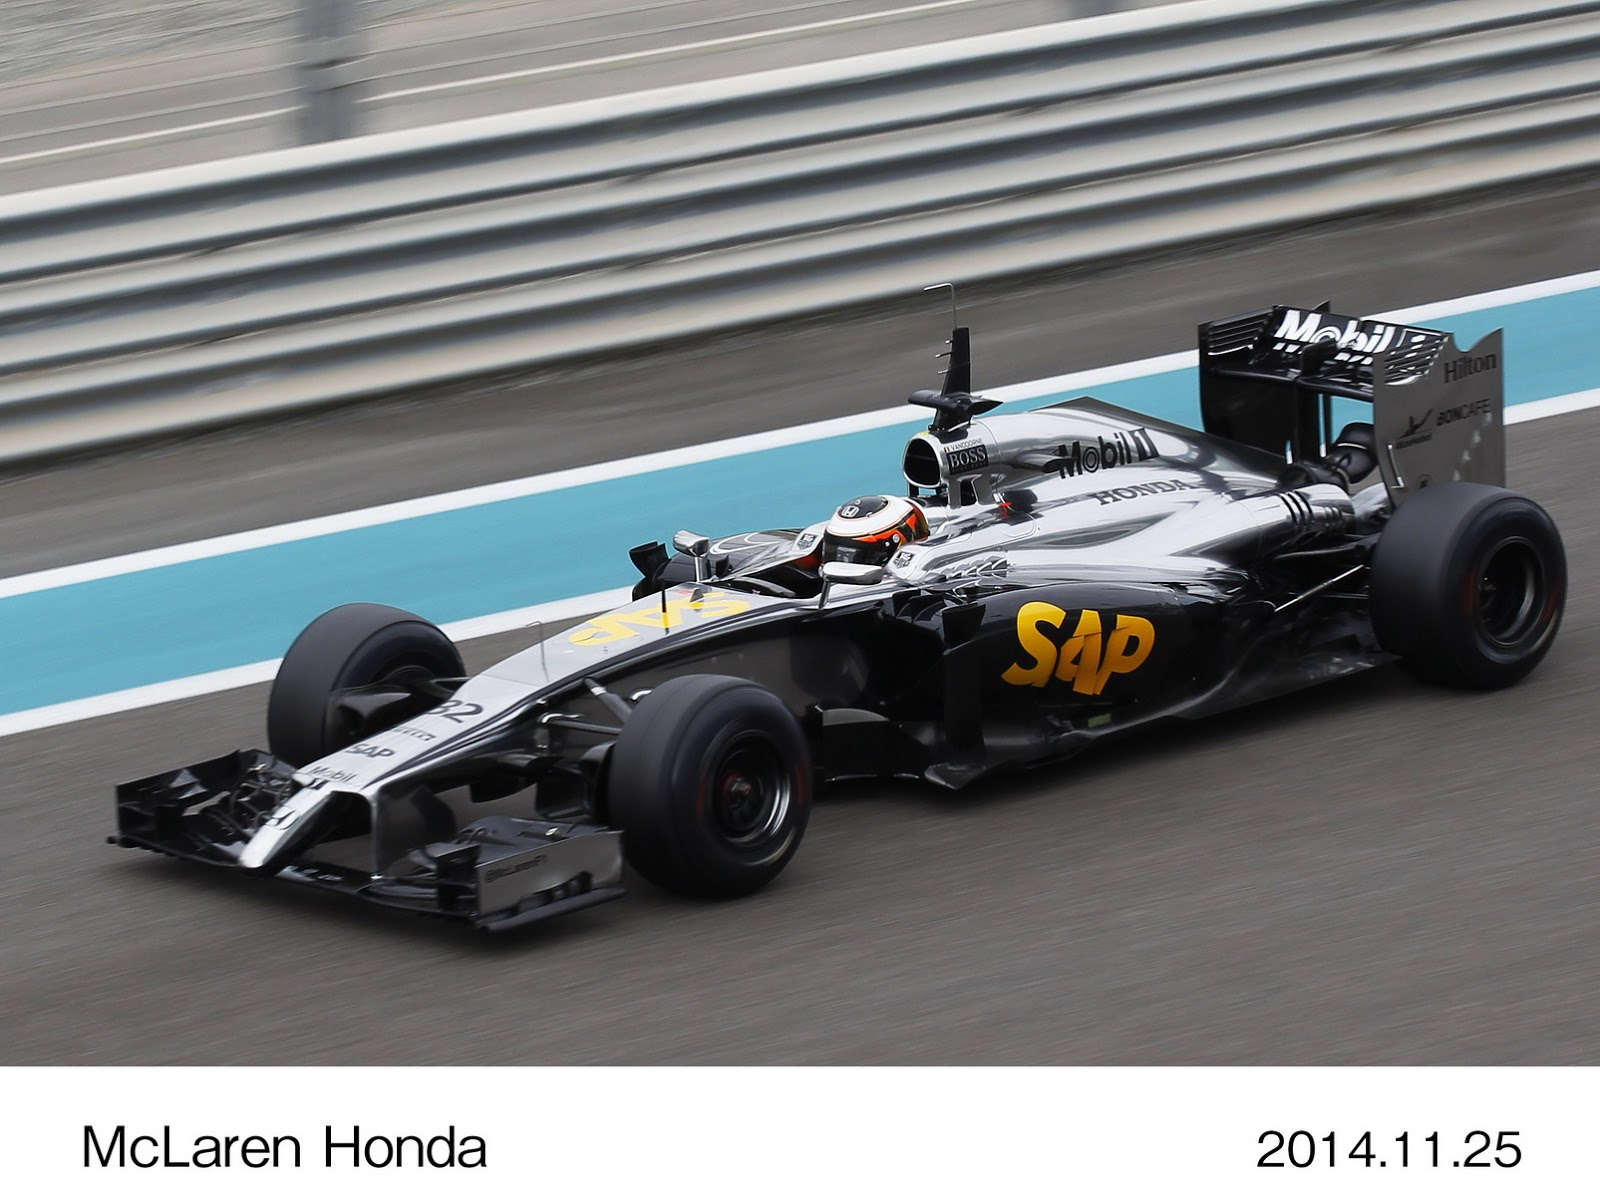 new mclaren honda f1 prototype makes its first outing on track w video. Black Bedroom Furniture Sets. Home Design Ideas